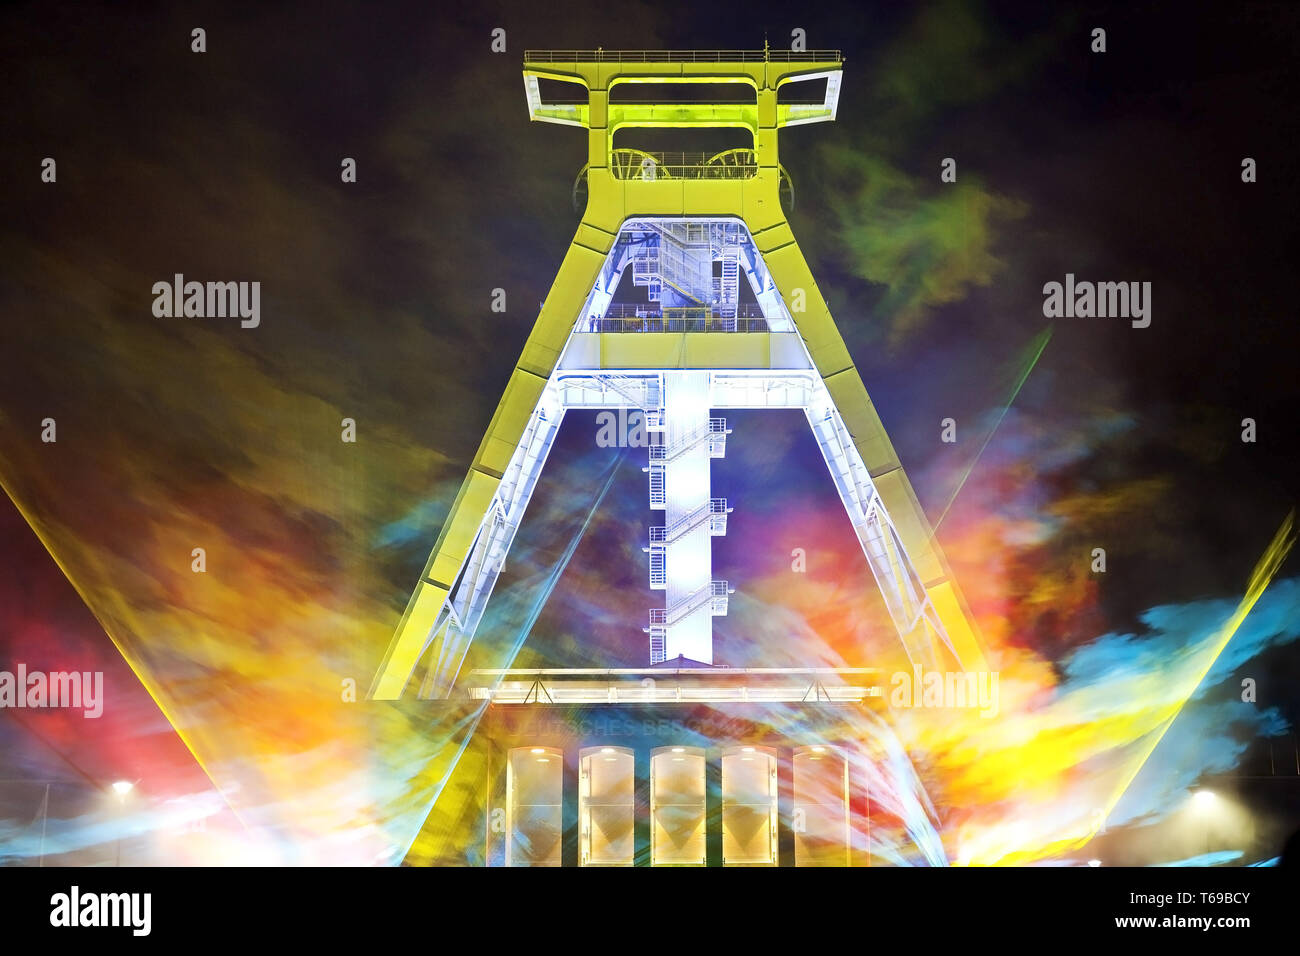 laser show at the pit frame of Deutsches Bergbau-Museum at Extraschicht, Bochum, Germany - Stock Image